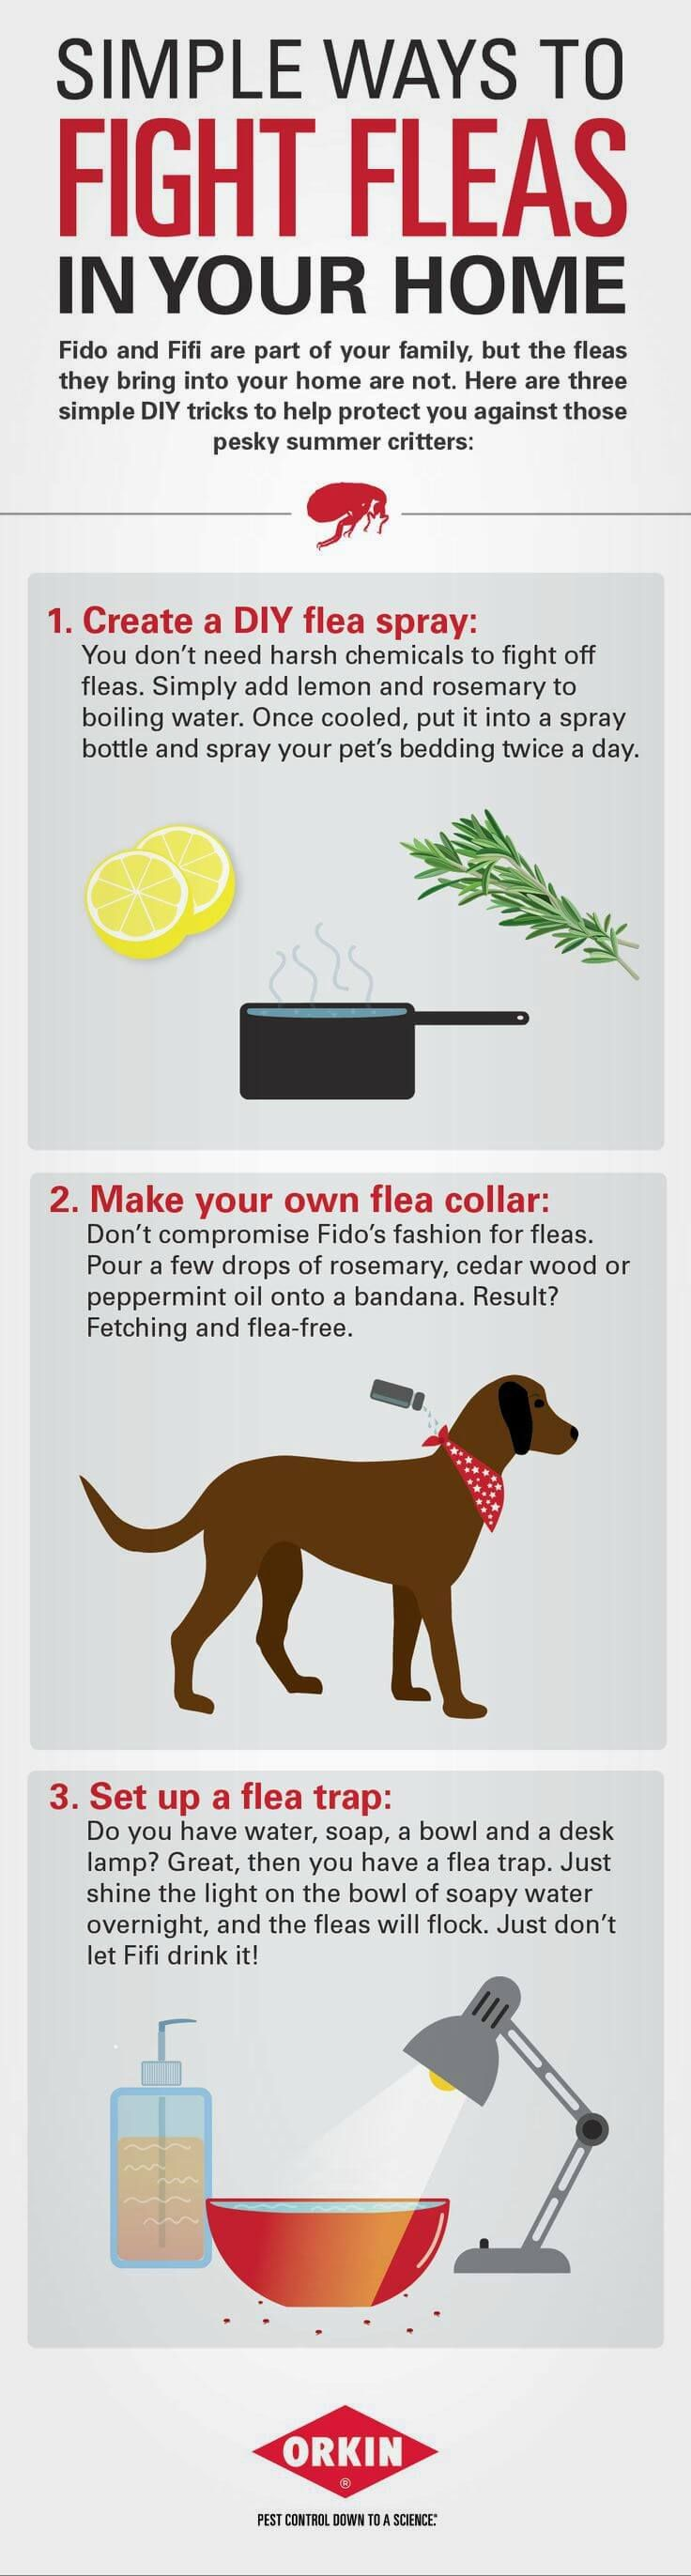 How To Get Rid Of Fleas In The House Video Tutorial (With ...